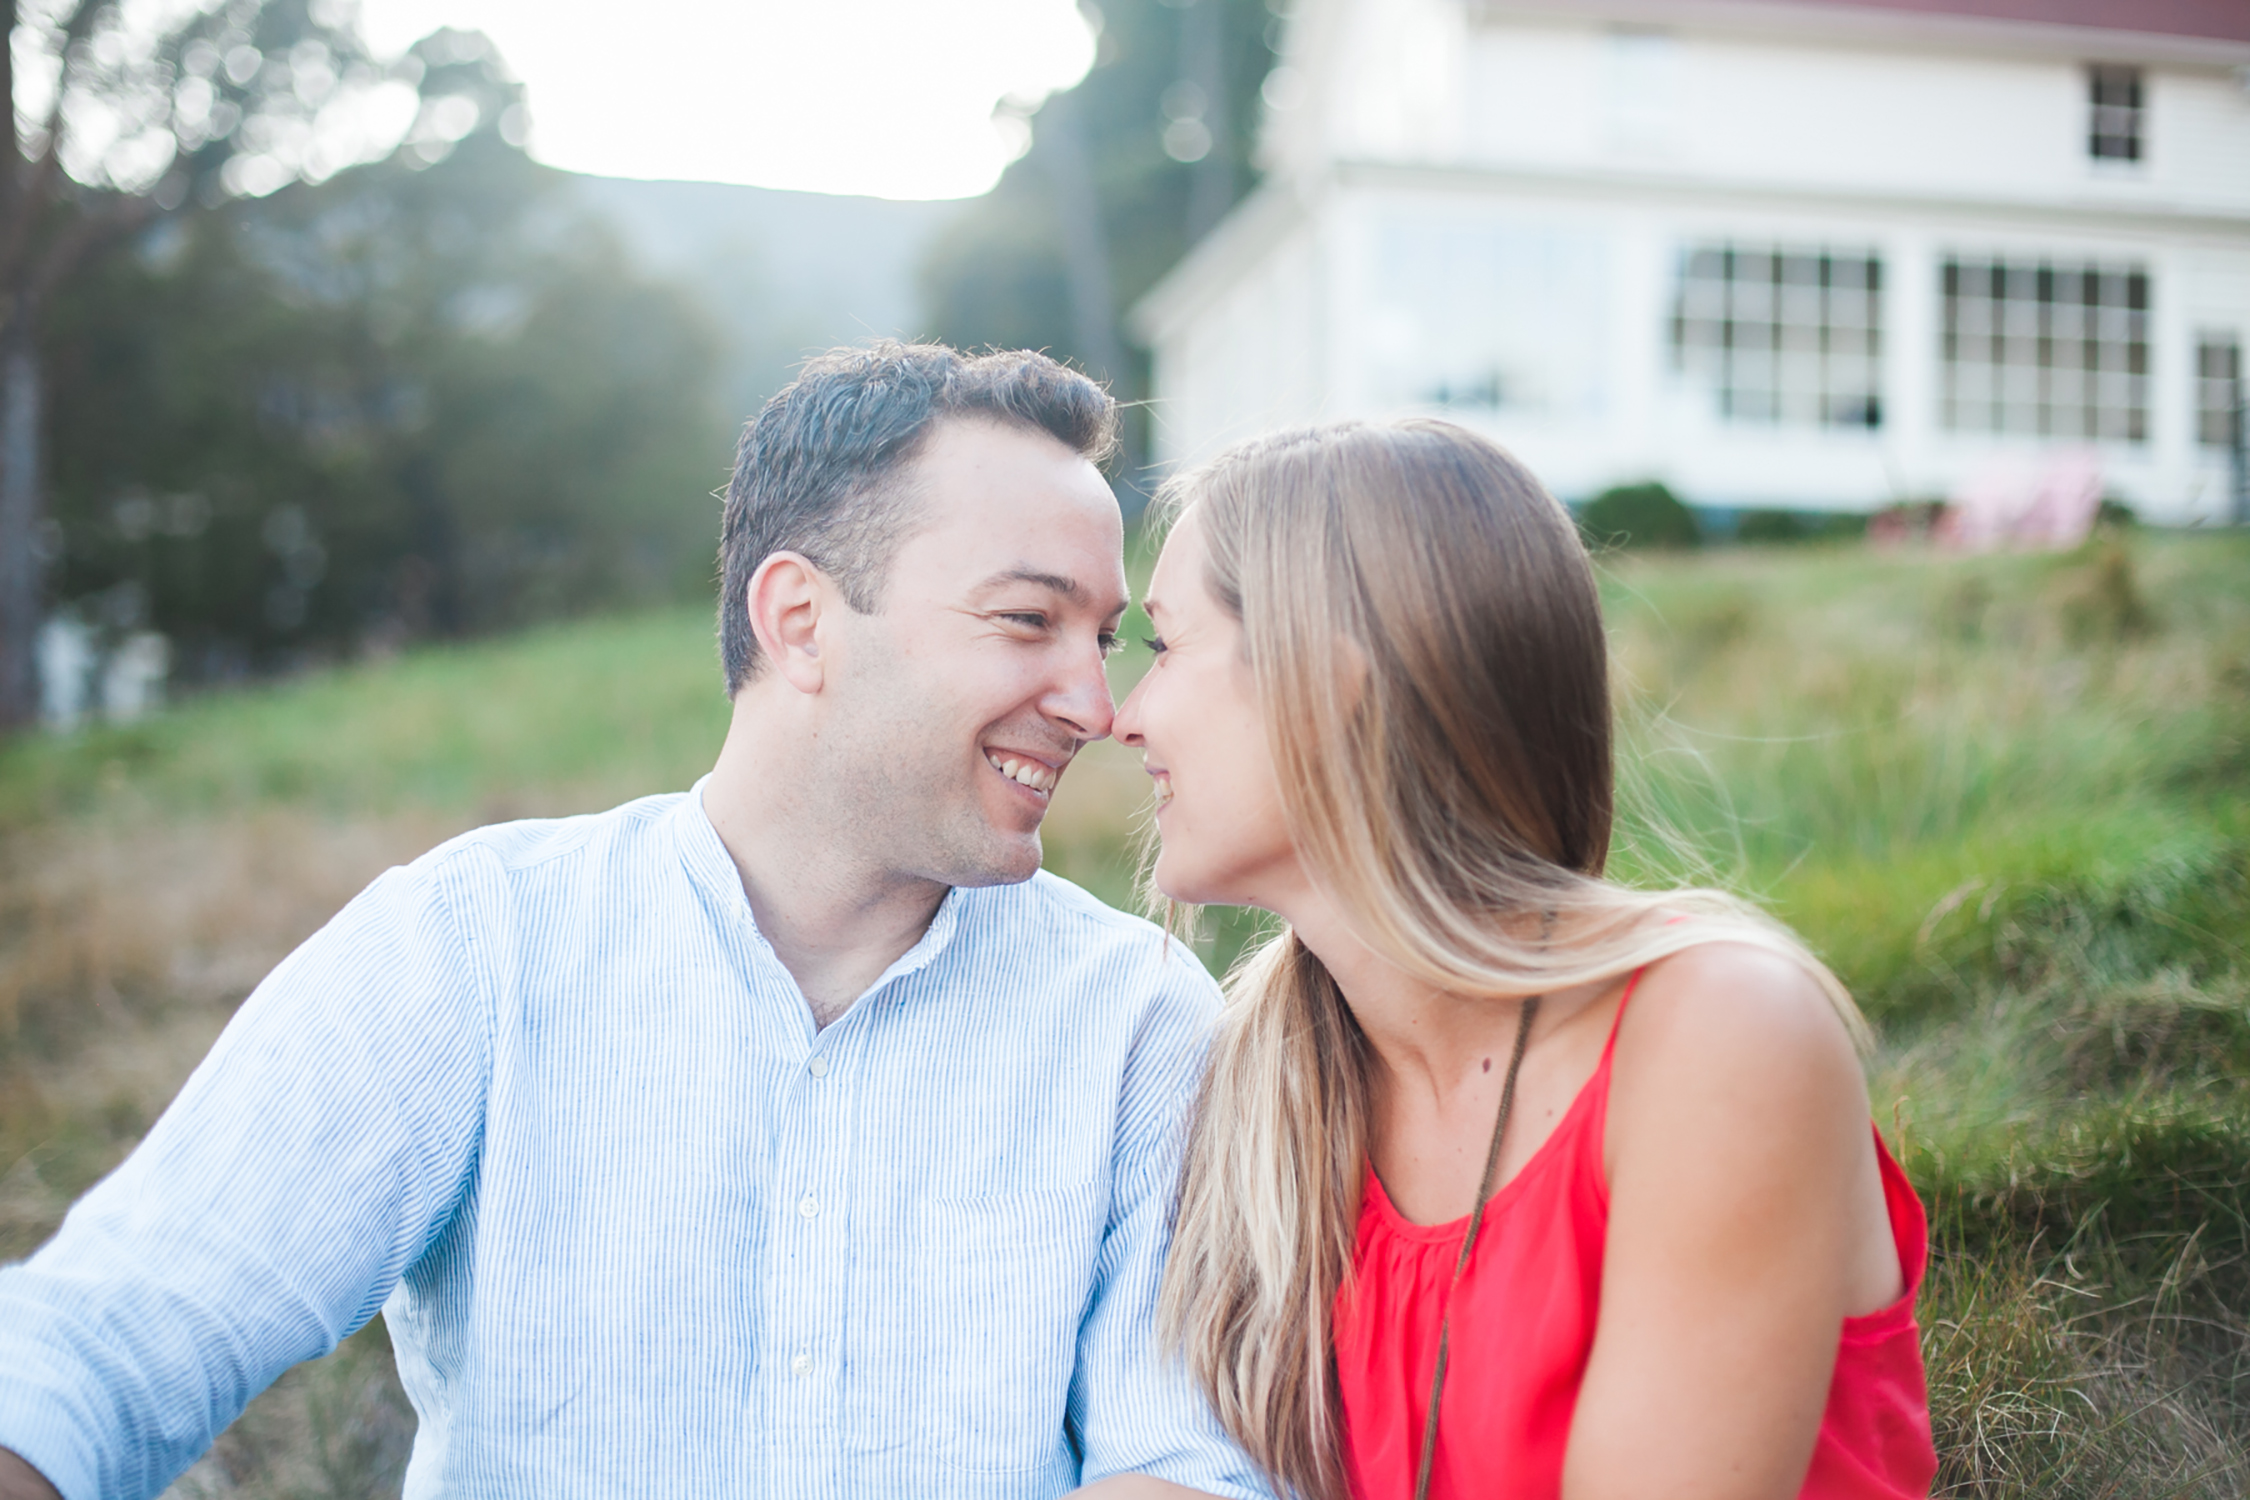 san-francisco-bay-area-engagement-photo-01.html